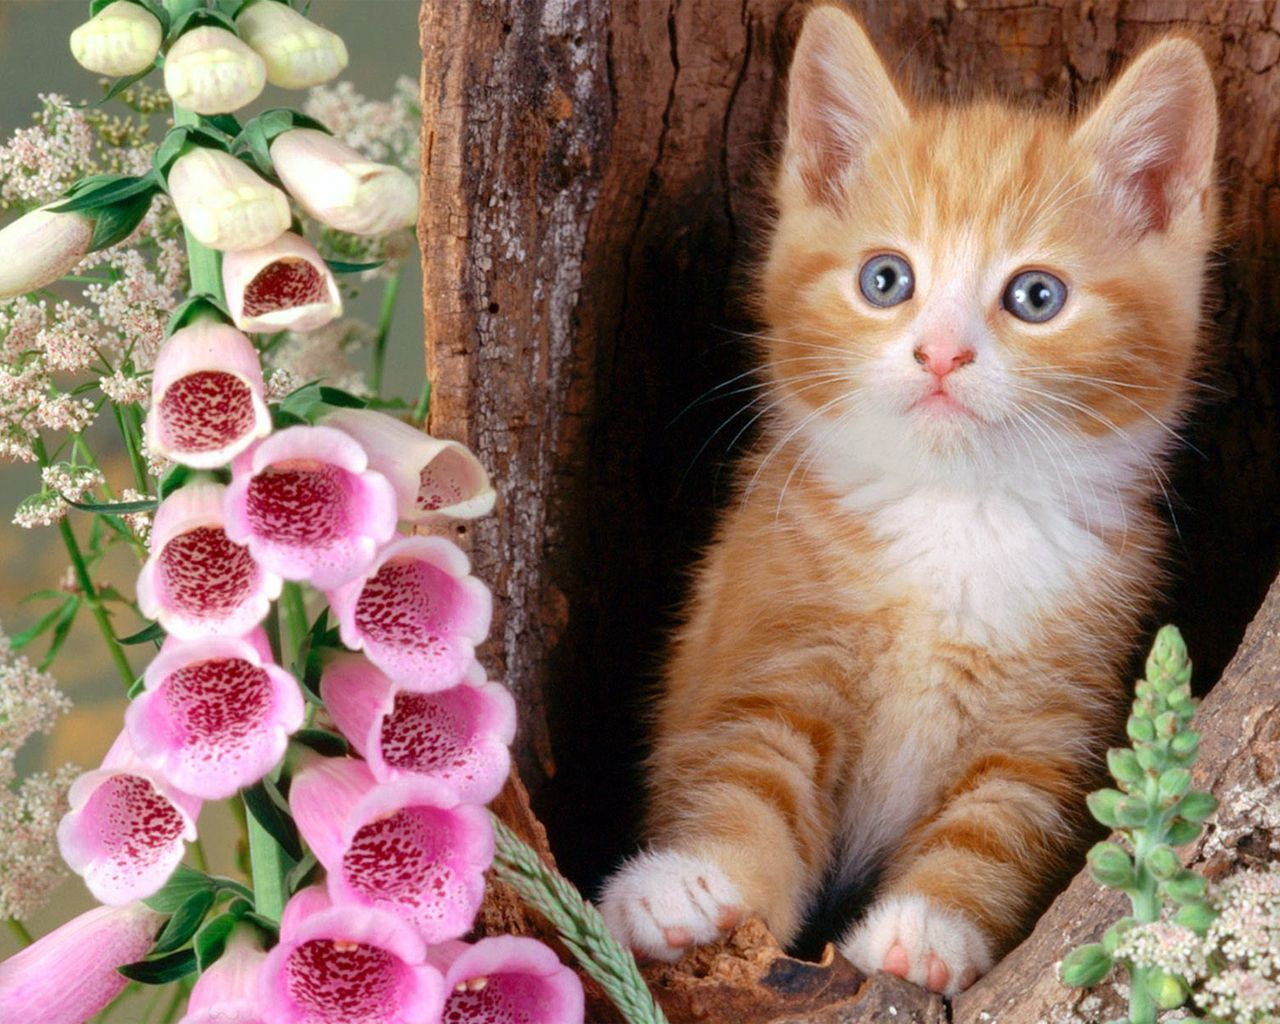 Cute Cats And Kittens Looking For Great Cat Pictures Description From Pinterest Com I Searched For This Cute Cat Wallpaper Cat Wallpaper Beautiful Cat Images